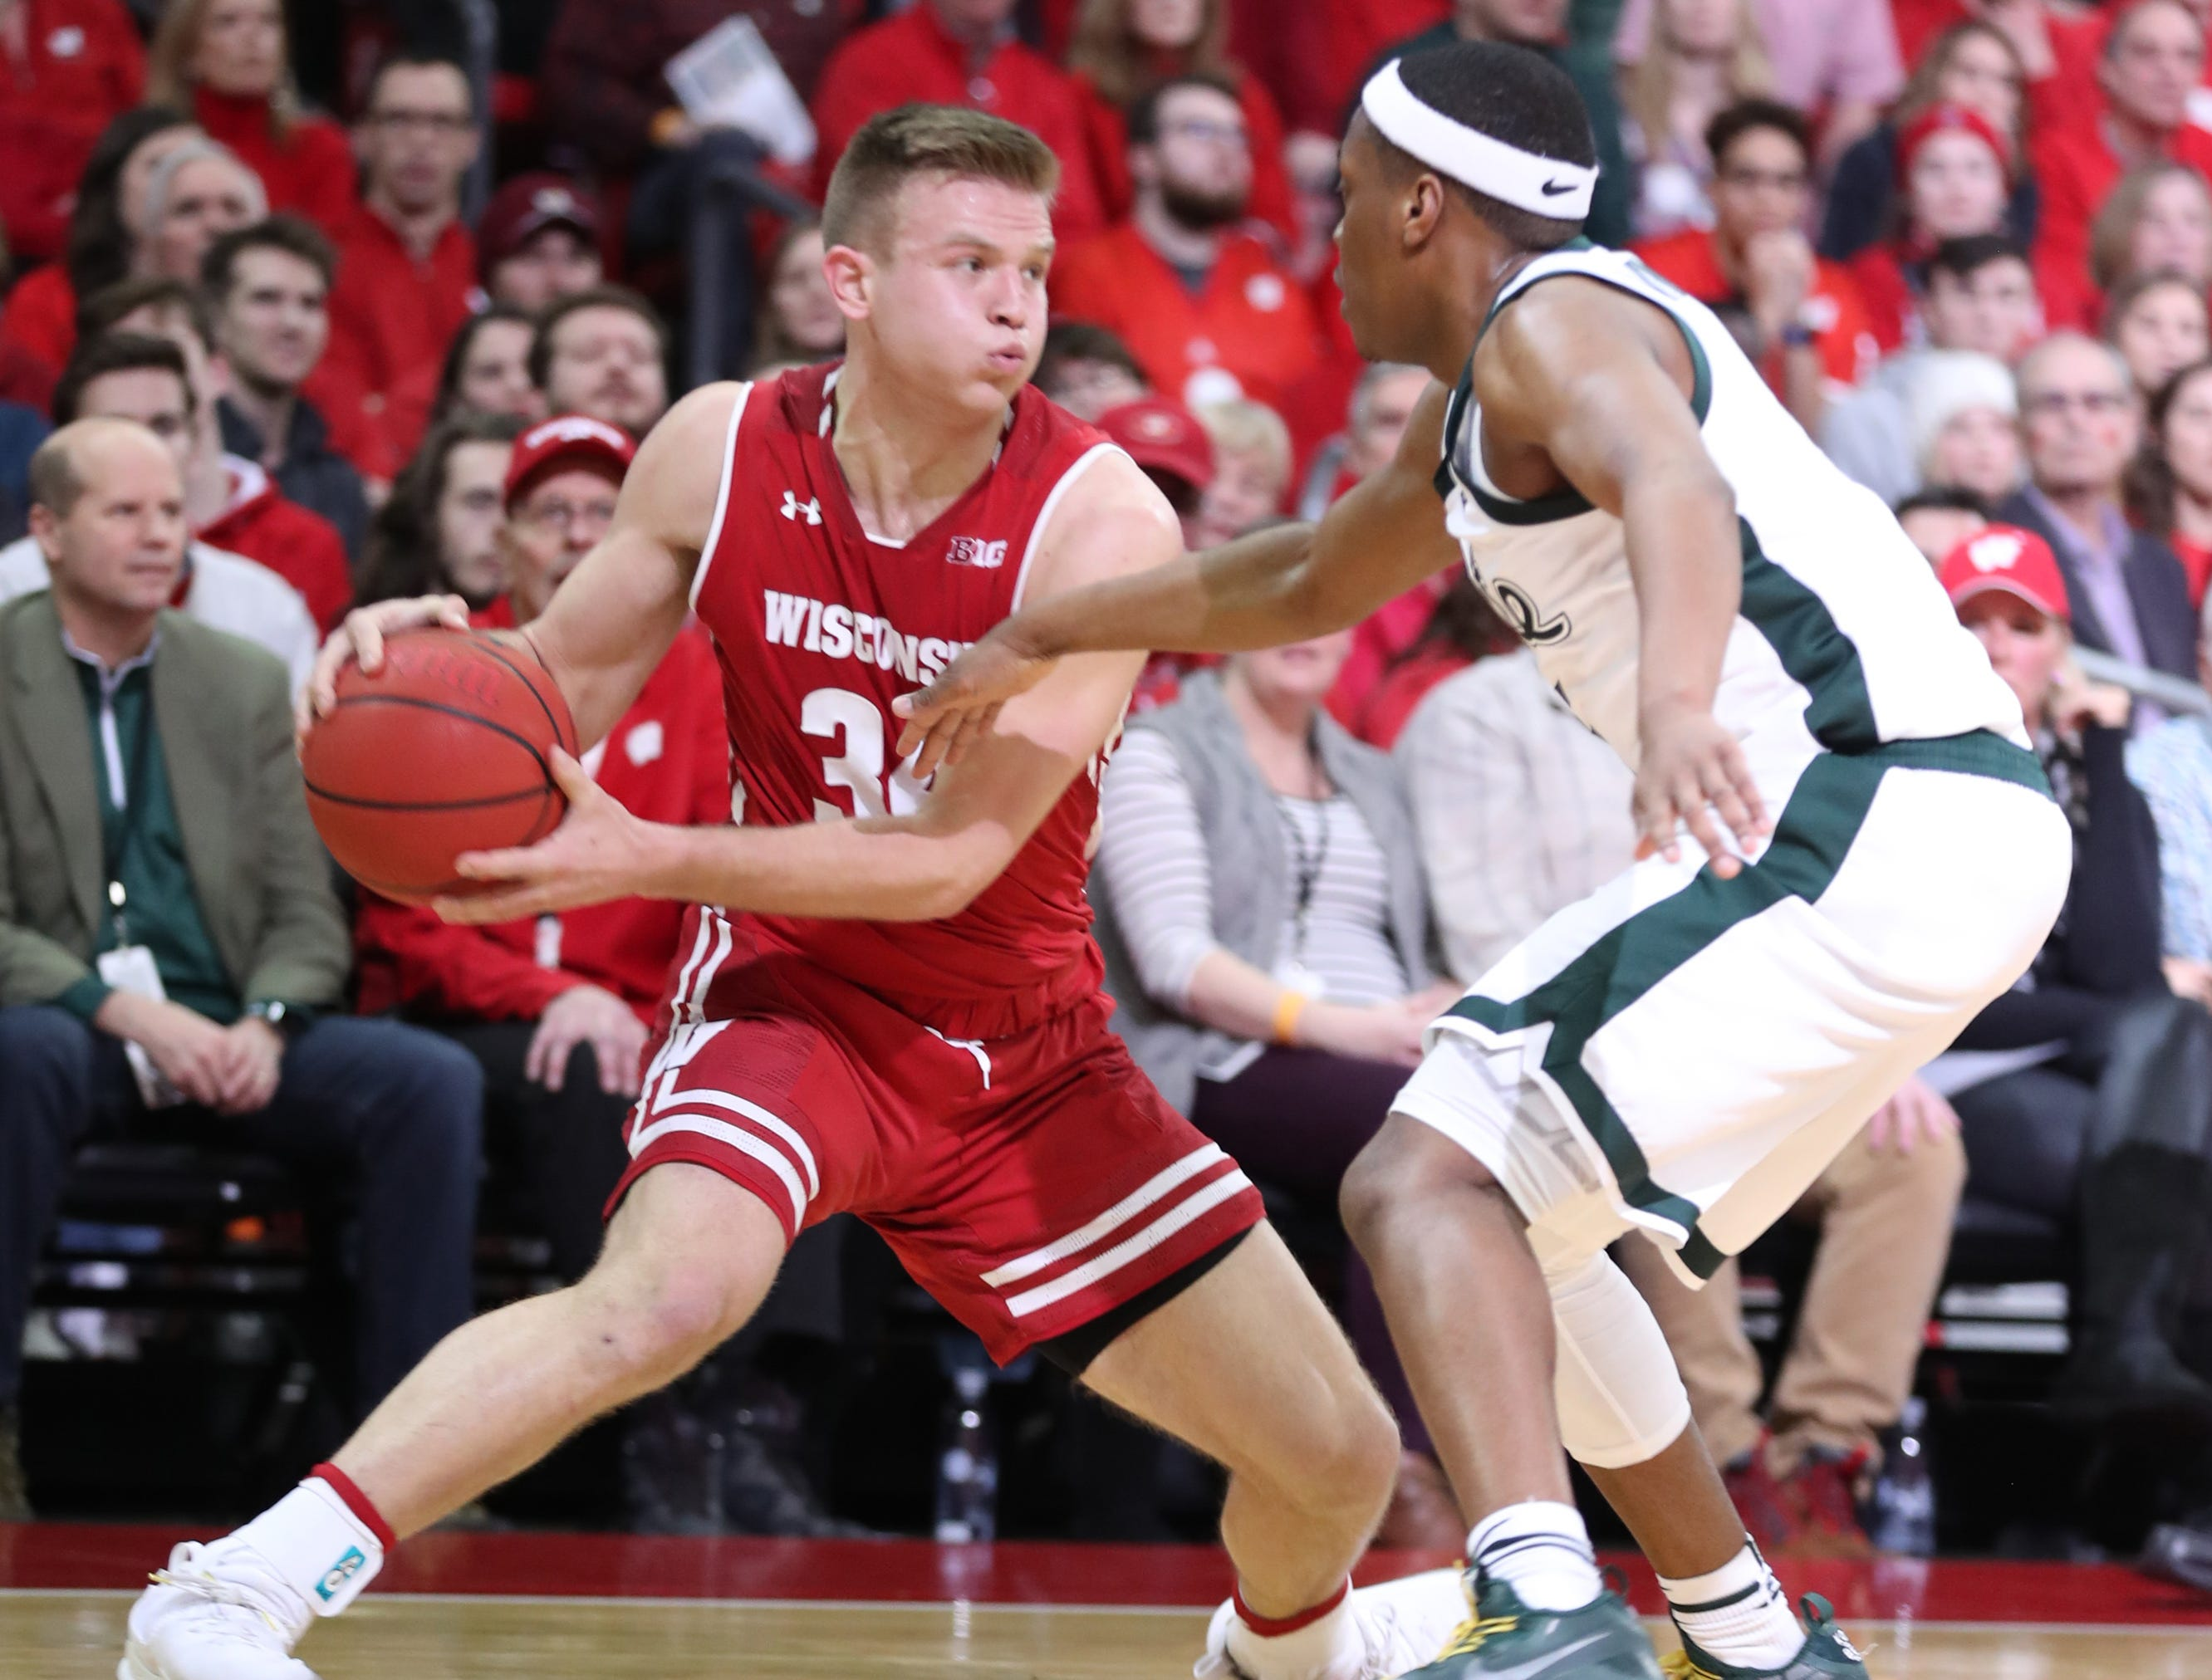 Wisconsin Badgers guard Brad Davison (34) looks to pass the ball as Michigan State Spartans guard Cassius Winston (right) defends during the second half at the Kohl Center.